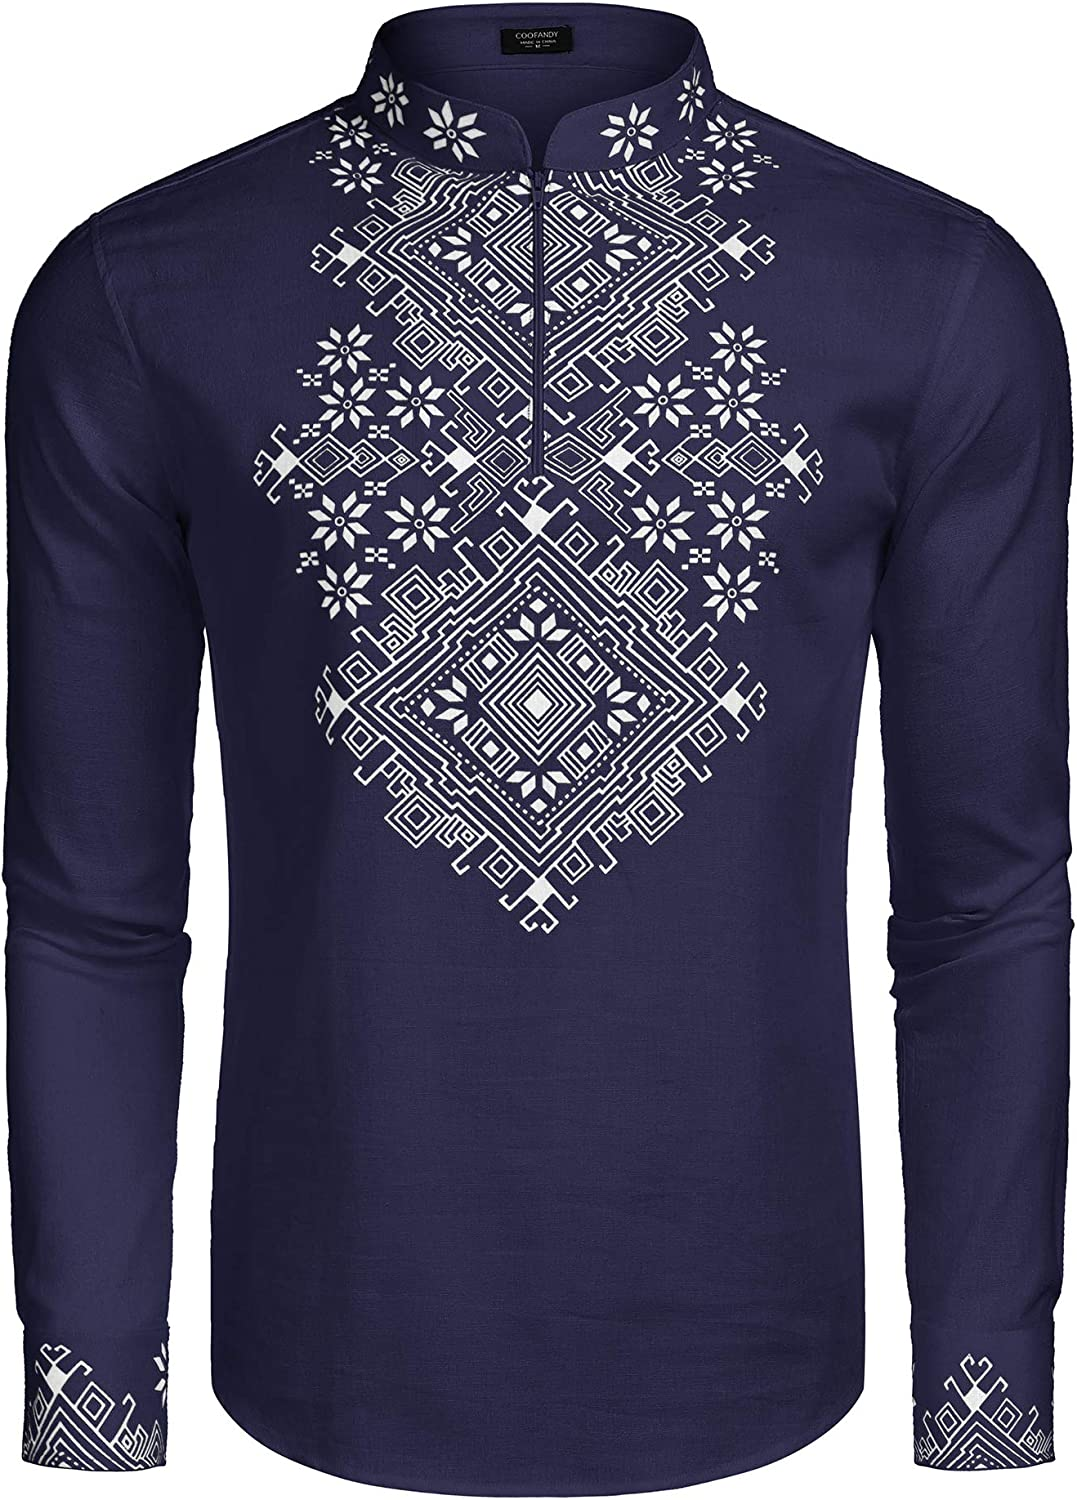 COOFANDY Men's Slim Fit Hippie Shirt Long Sleeve Floral Print Casual Zip Up Cotton Beach Party Henley T Shirt